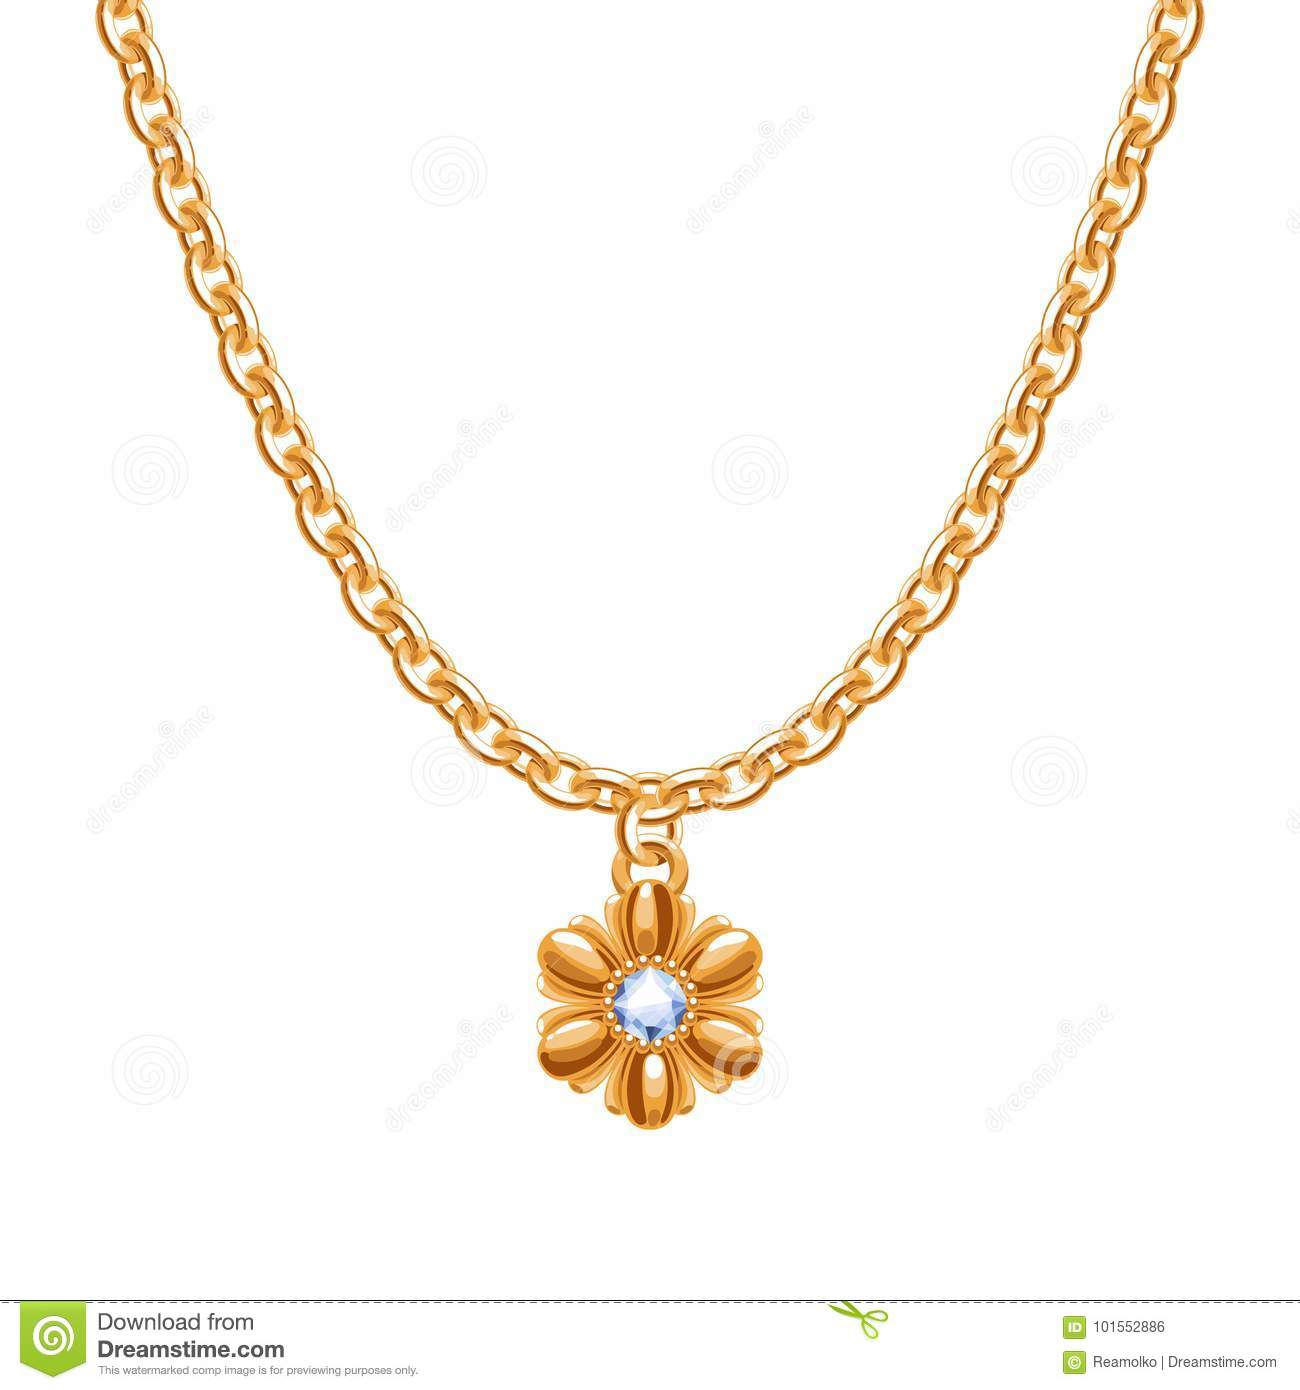 Golden chain necklace with golden flower pendant.